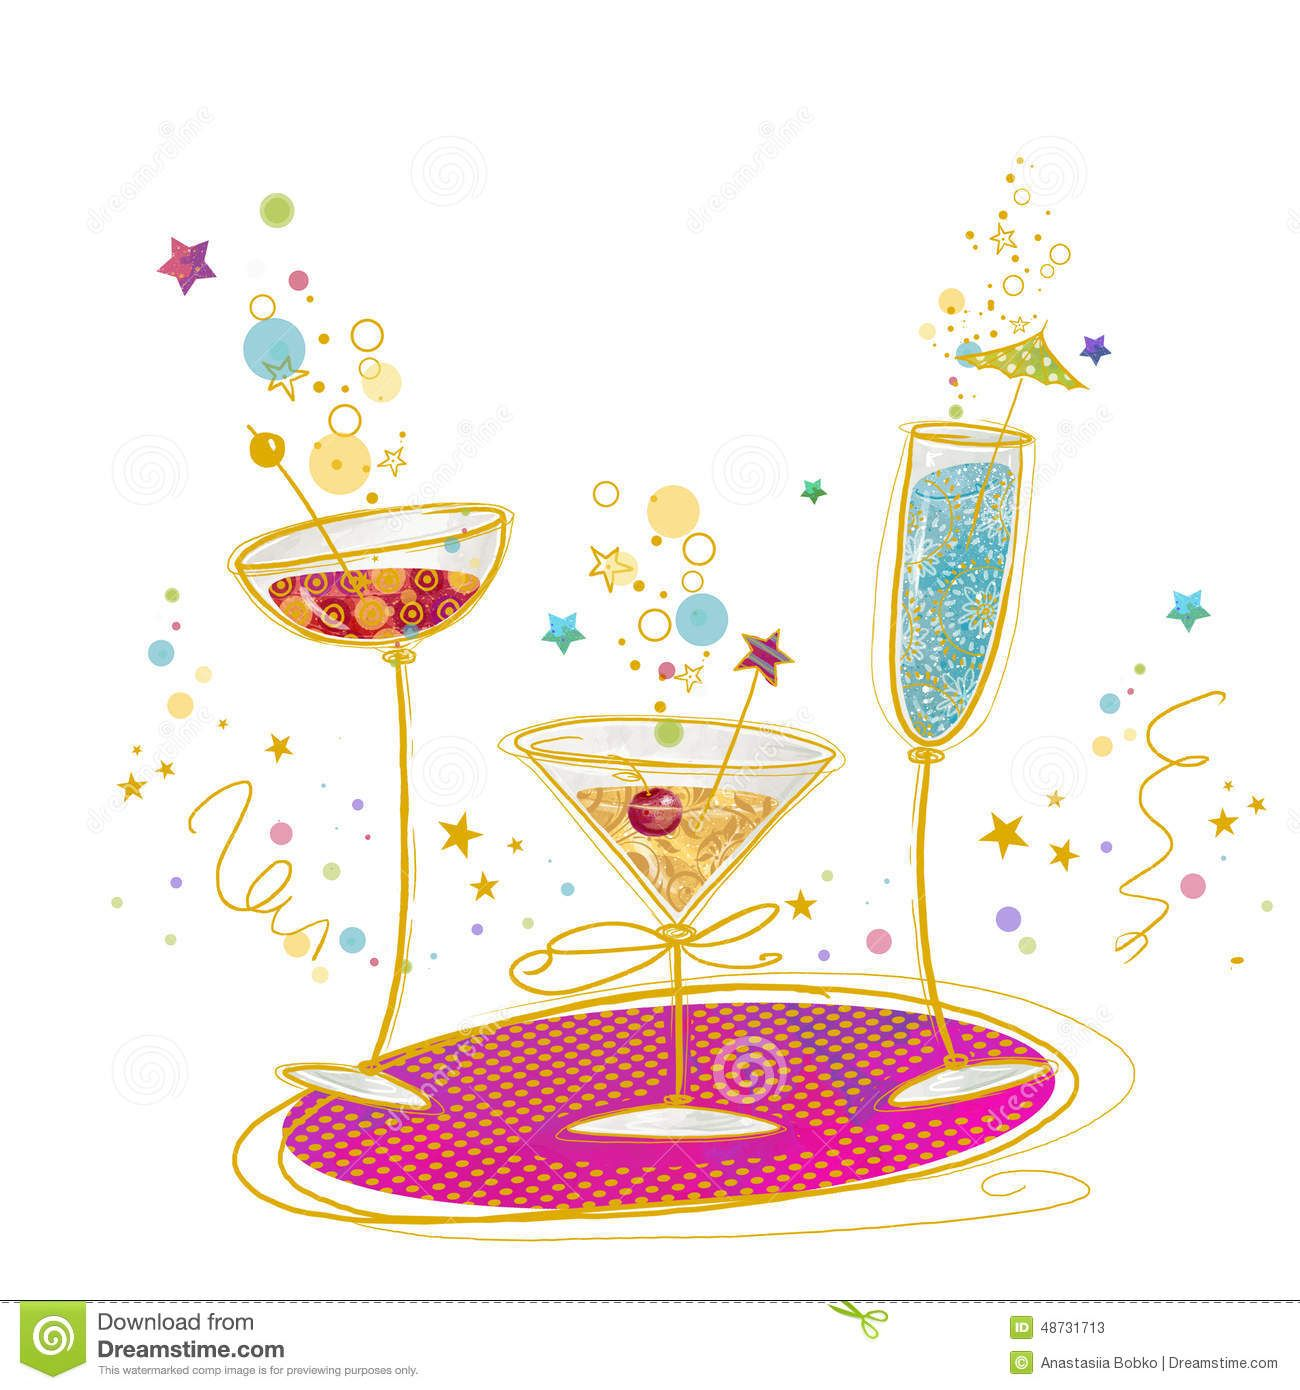 Cocktail clipart birthday. Showing gallery for martini